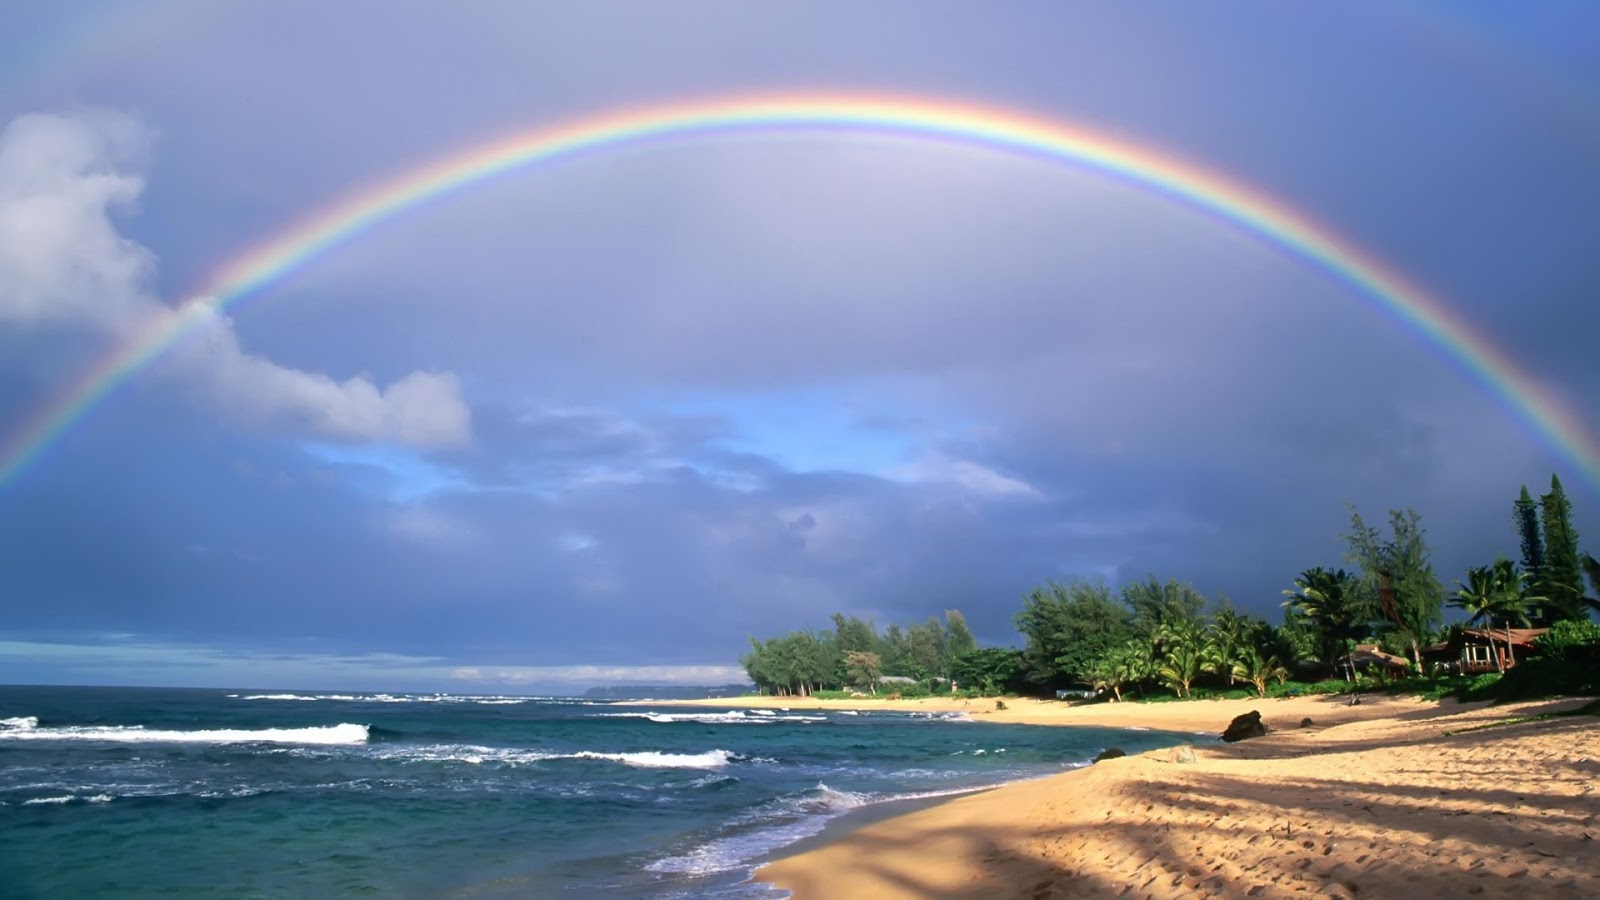 Nature Wallpaper Free Download - Double Rainbow , HD Wallpaper & Backgrounds